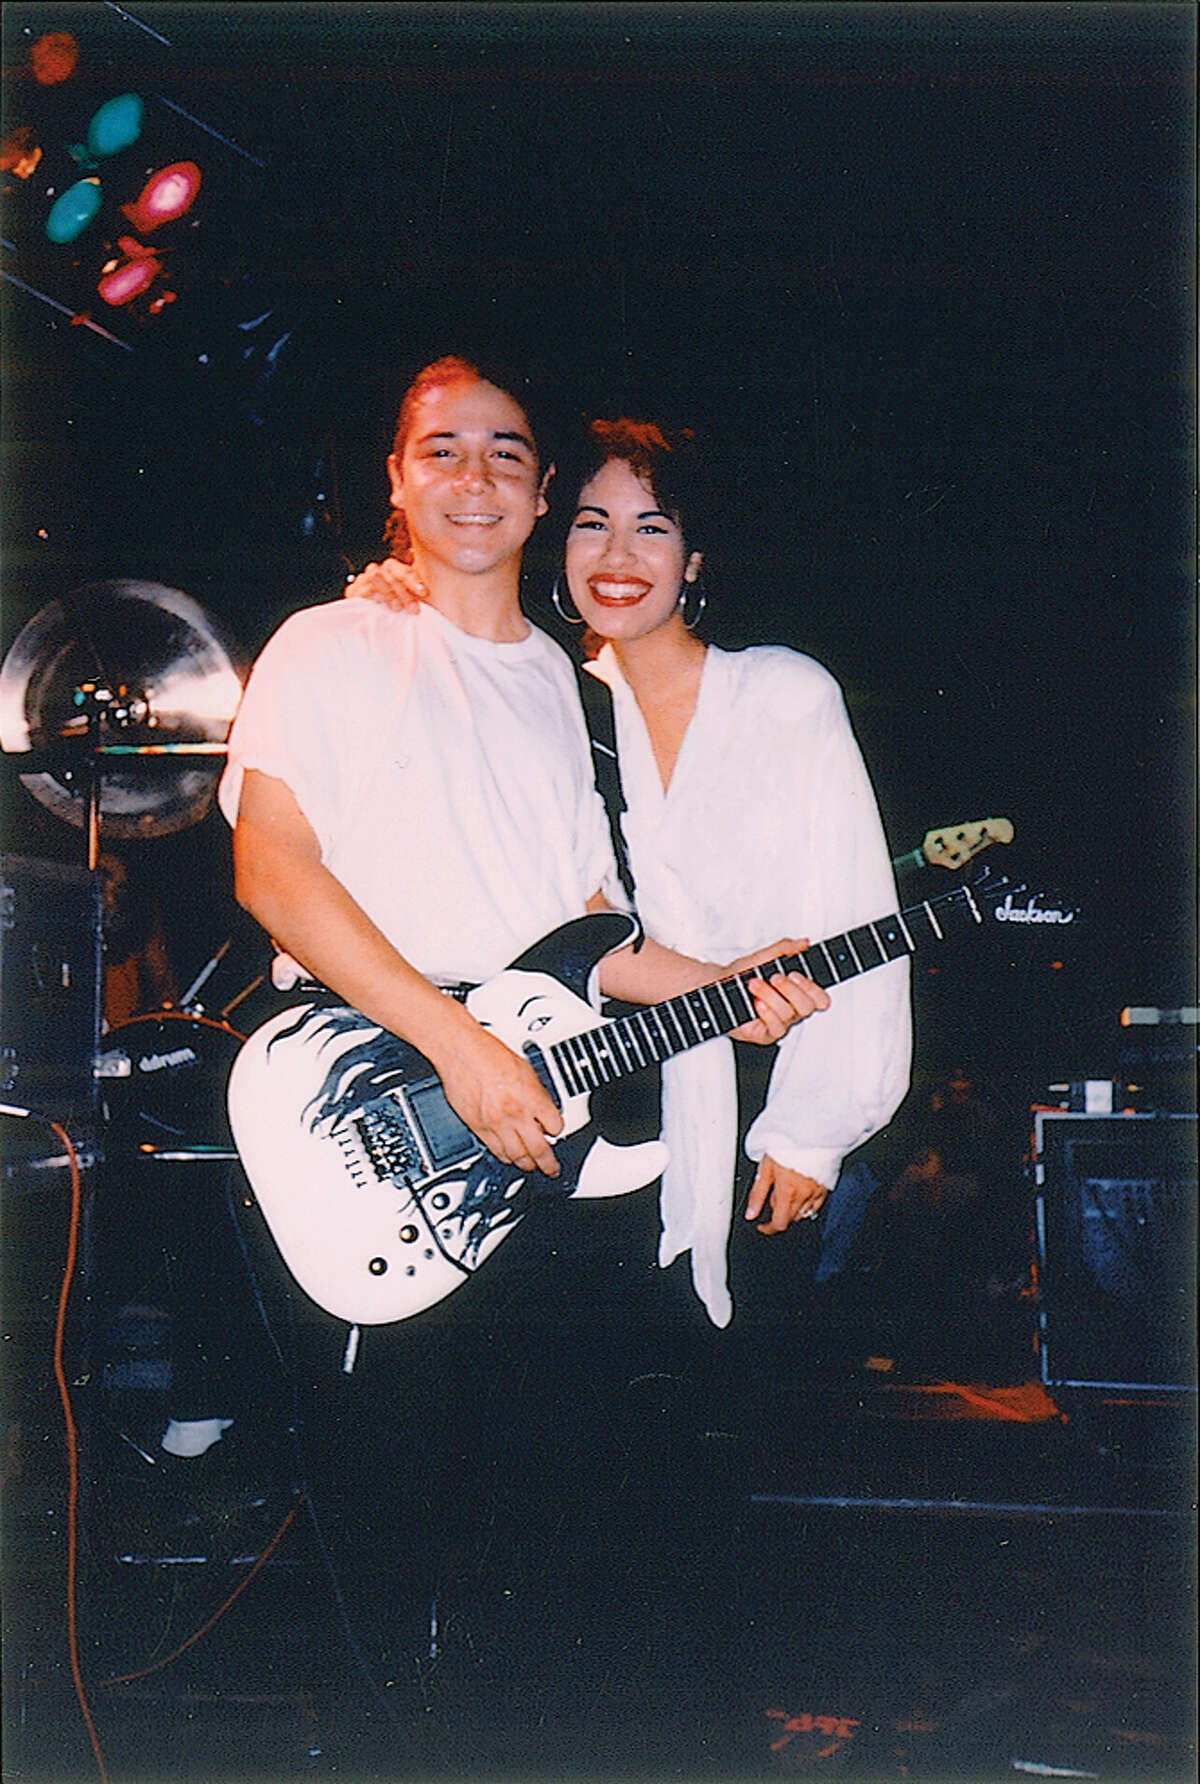 2. She loved her husband, Chris Perez, and she was not afraid to show it.   She managed to combine sass and sweetness when she defended him at the 1995 Tejano Music Awards. During her acceptance speech for one of the many awards she won that night, members of the crowd began booing after she thanked her husband. Selena put an end to the disrespect by saying,